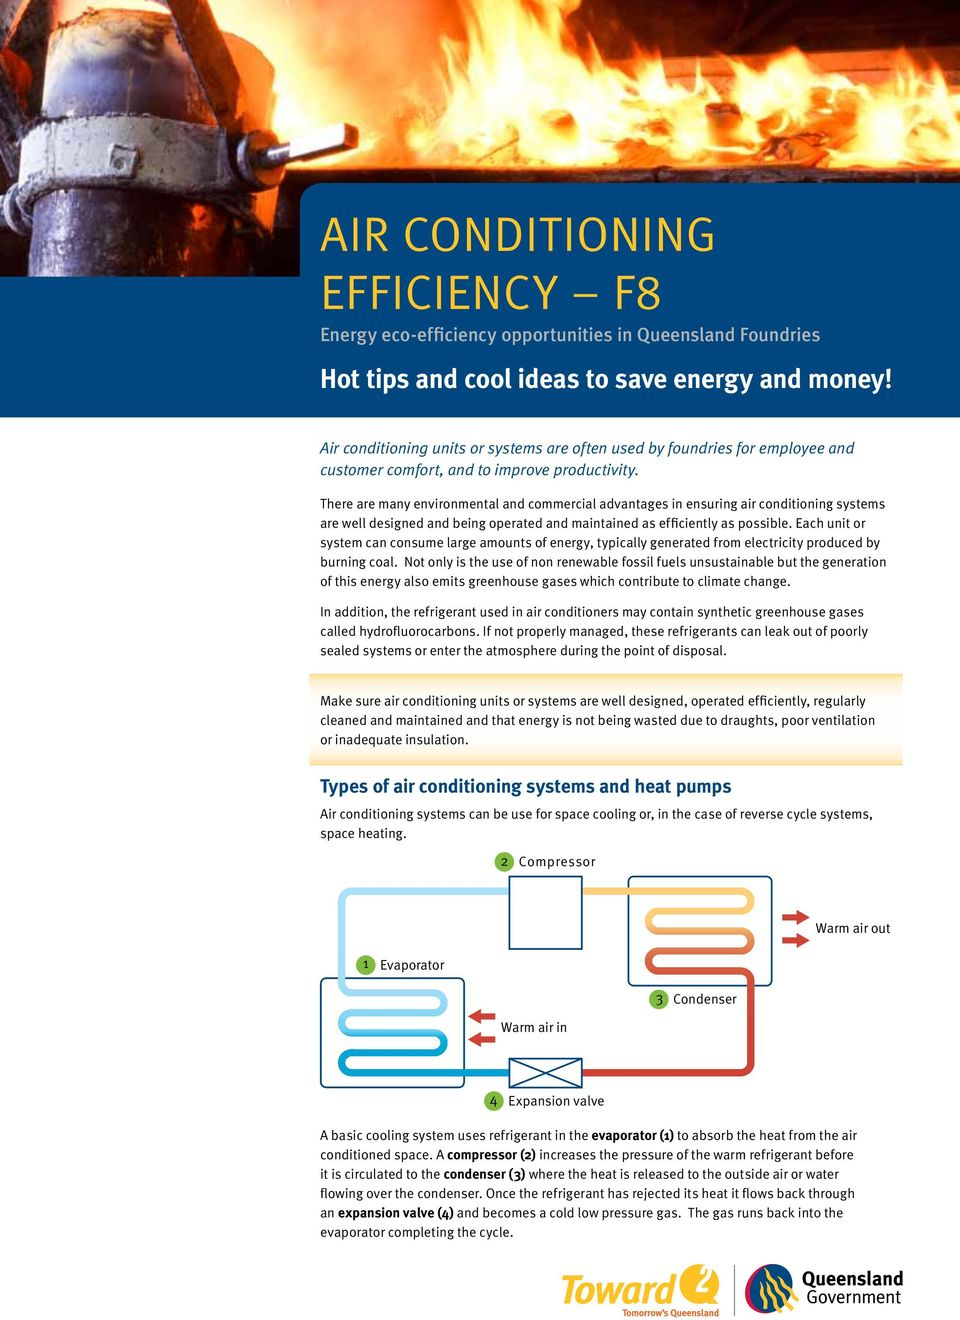 There are many environmental and commercial advantages in ensuring air conditioning systems are well designed and being operated and maintained as efficiently as possible.